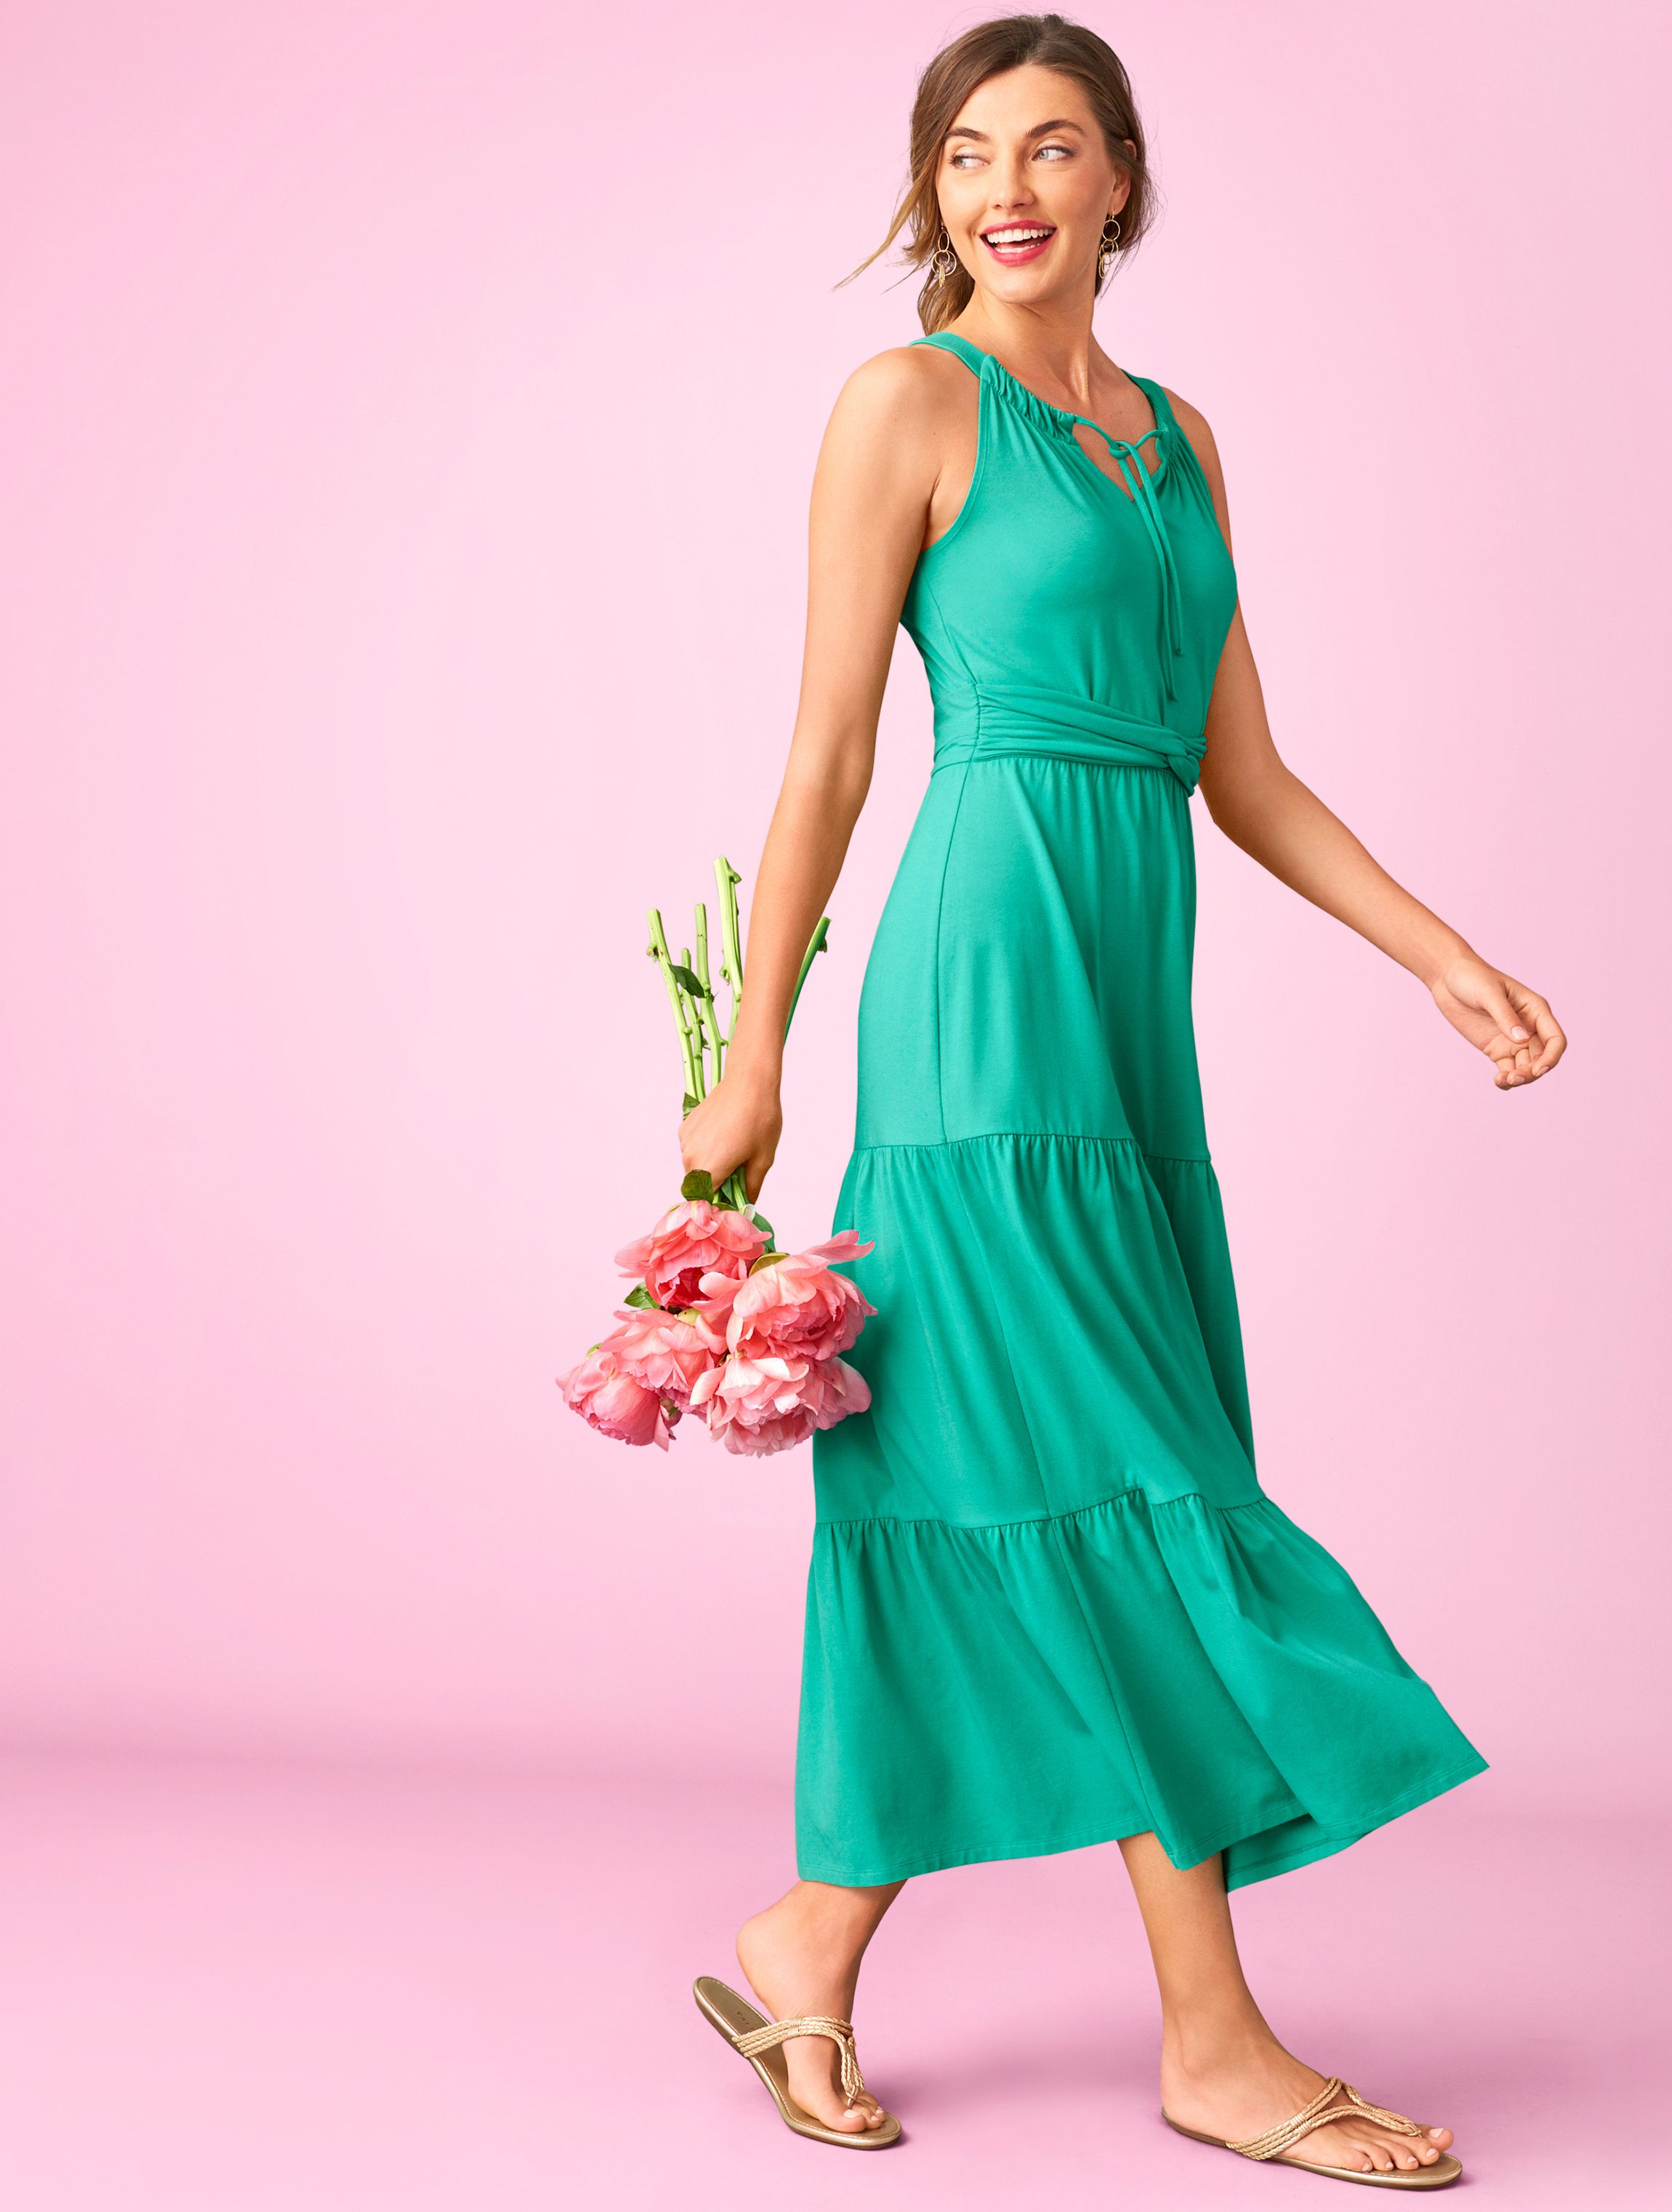 In Case You Were Looking For A Maxi Dress That Is Top Tier The Jersey Maxi Dress Is Our Favorite Warm Weather Uniform Maxi Dress Maxi Jersey Dress Dresses [ 3042 x 2300 Pixel ]